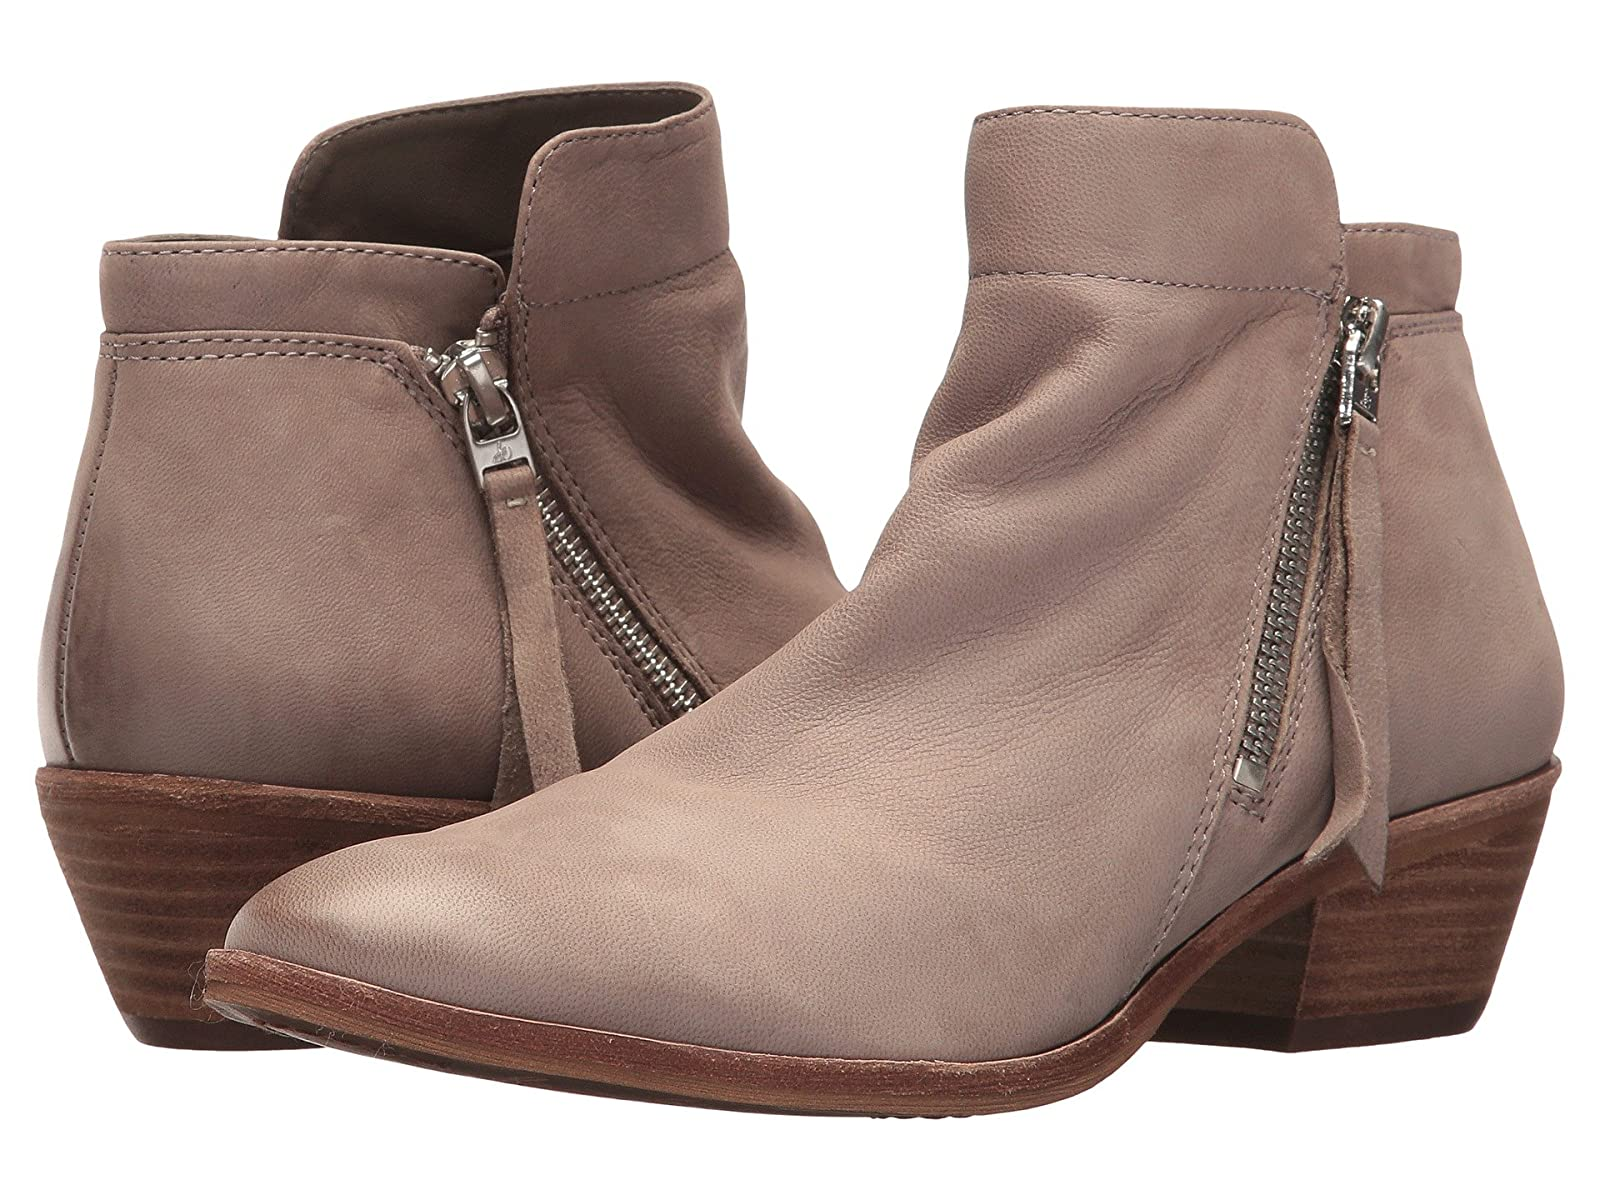 Sam Edelman PackerEconomical and quality shoes